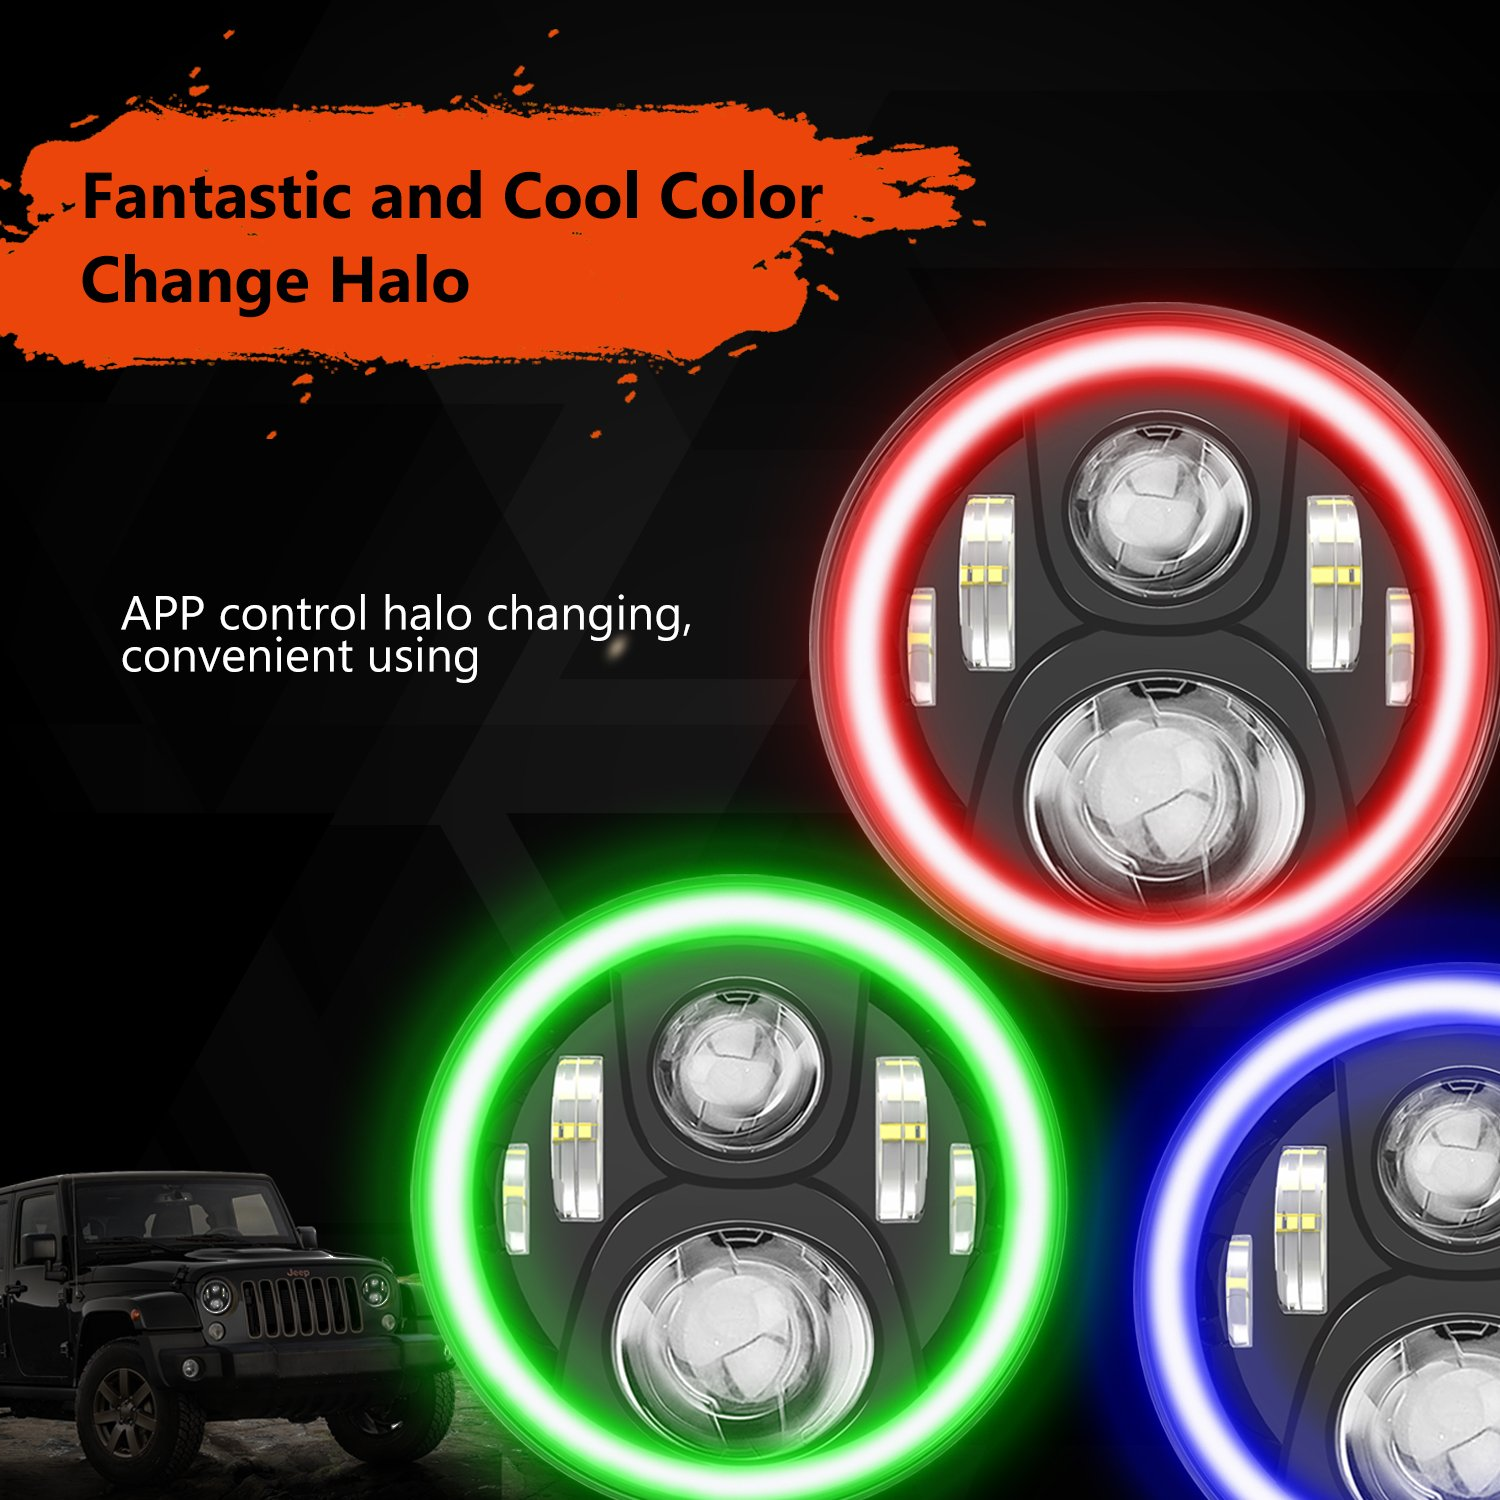 Rgb Halo Led Headlight For Jeep Wrangler Cj Tj Jk Jku 2004 Front Suspension Diagram Auto Parts Diagrams Rubision Unlimited 7inch Headlamp Assembly With Angel Eye